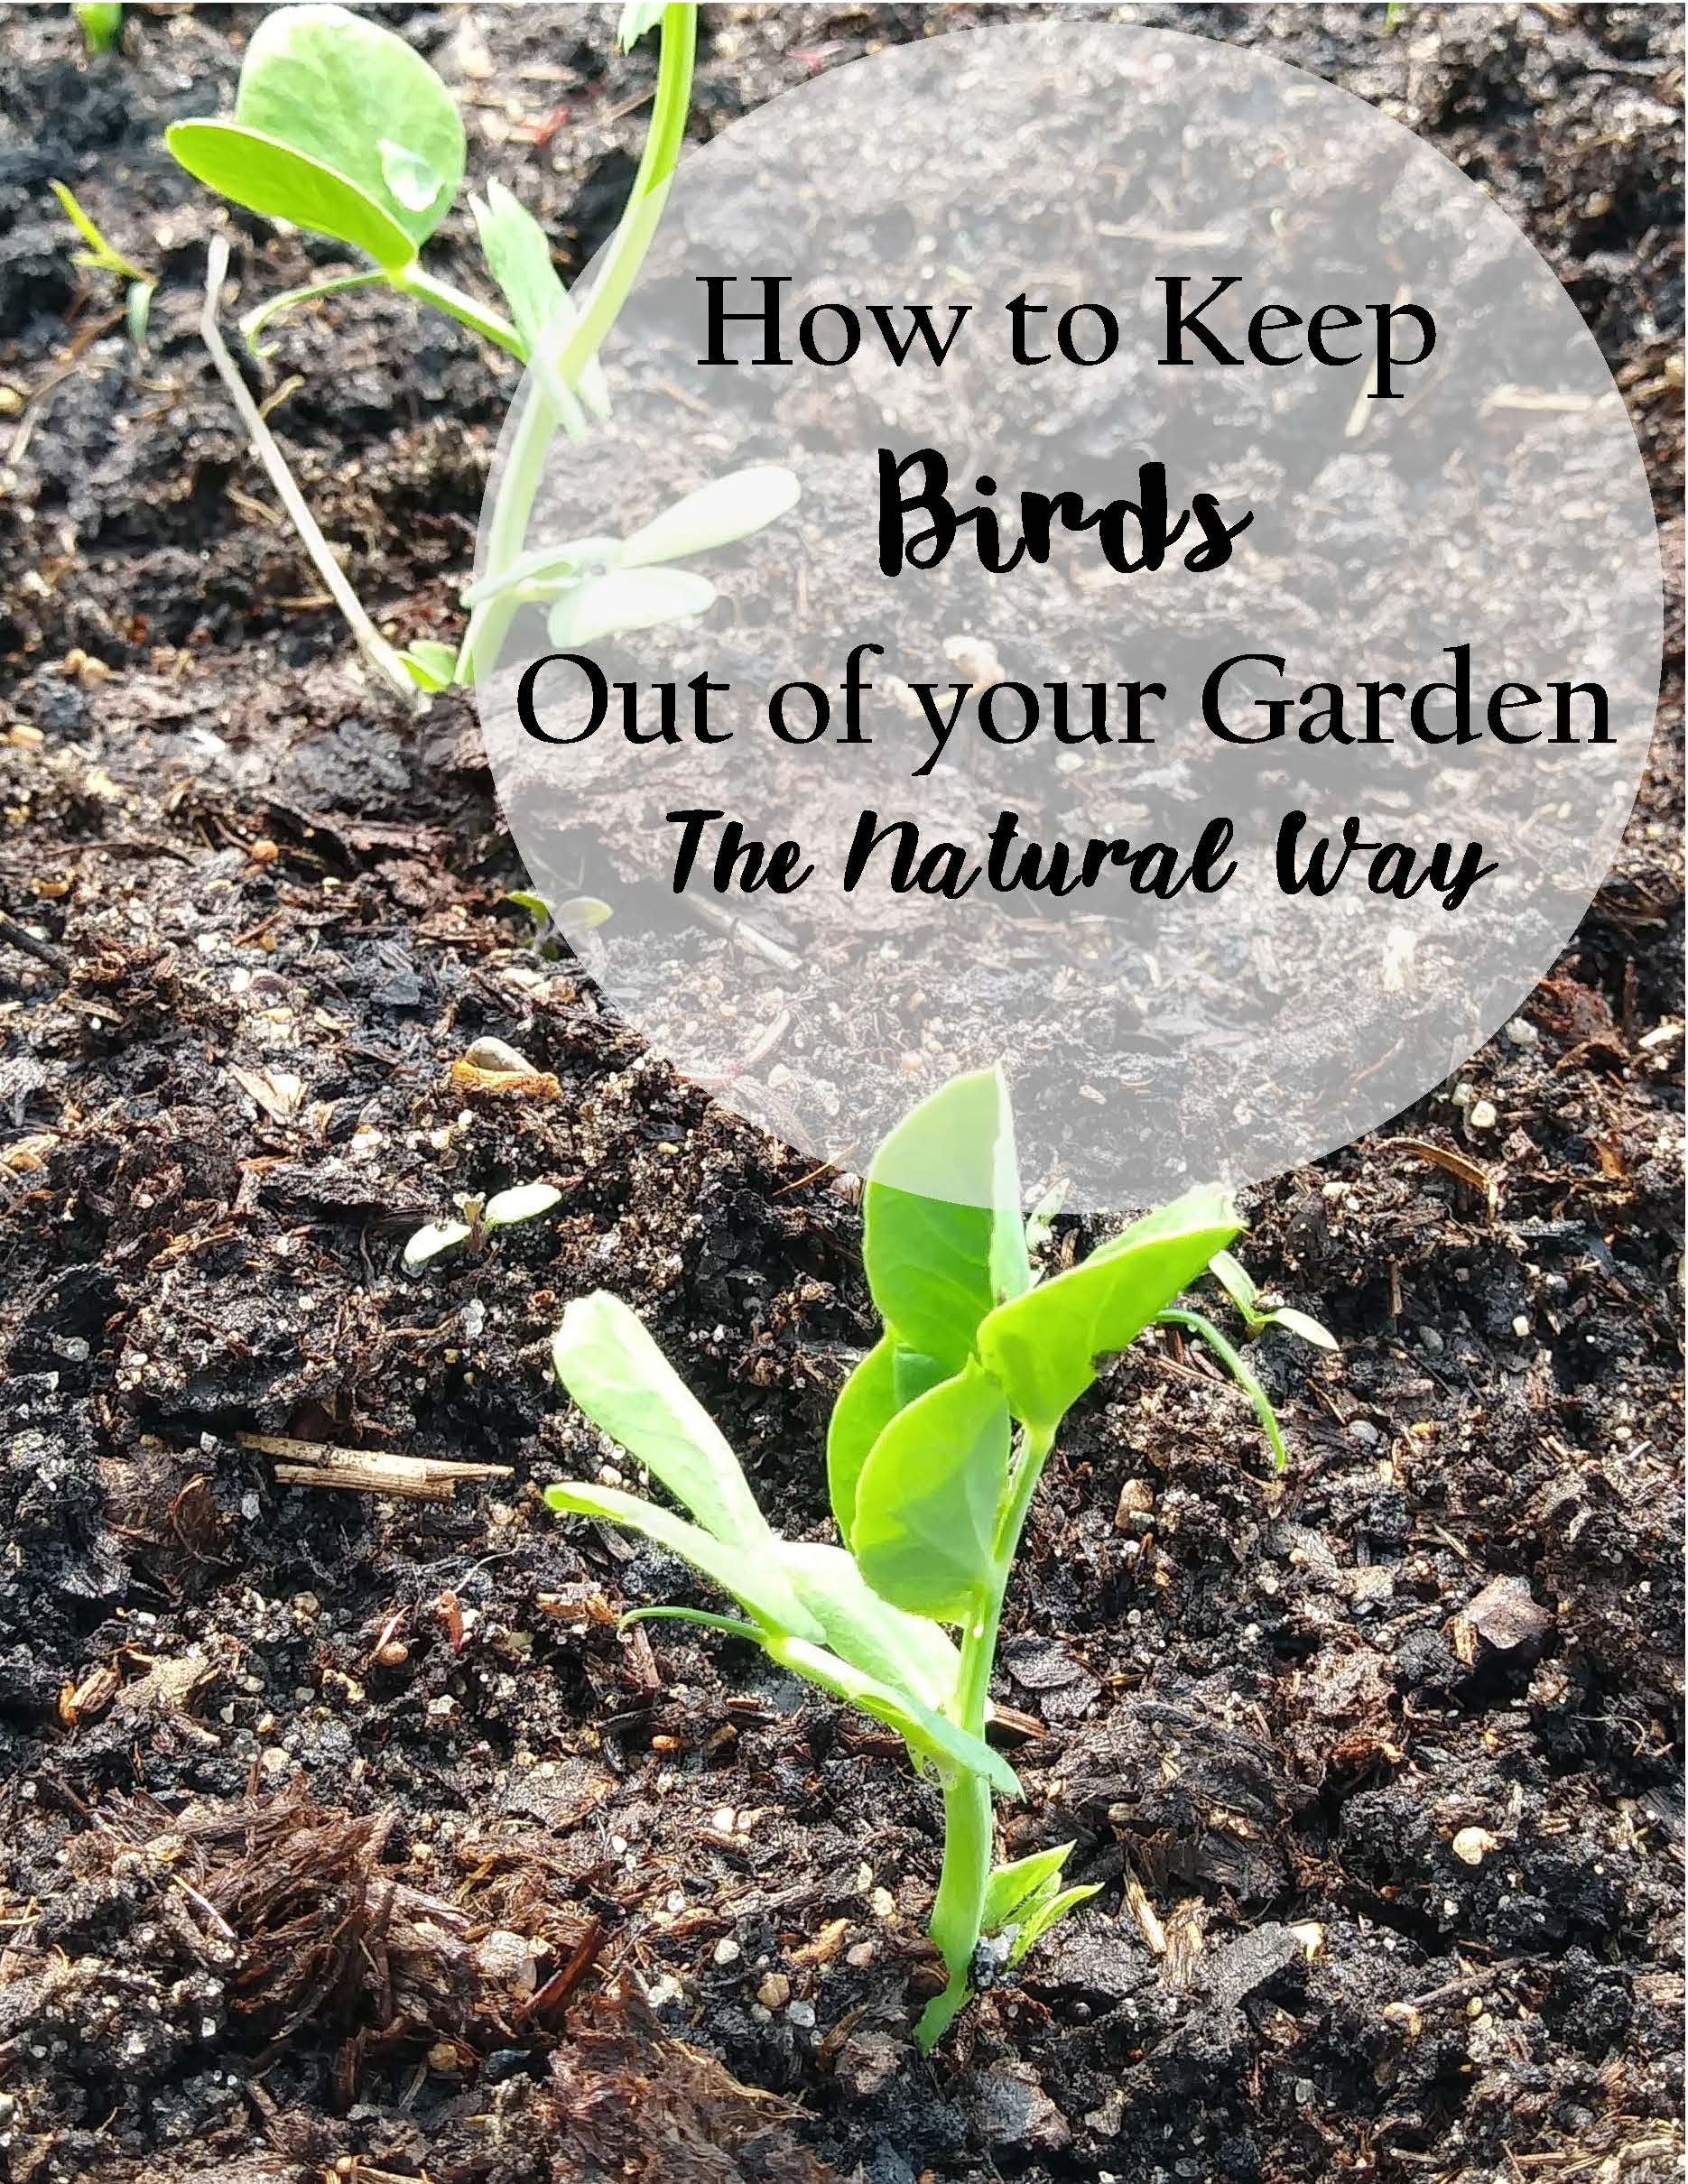 Keeping Rabbits And Birds Out Of Your Garden The Natural Way